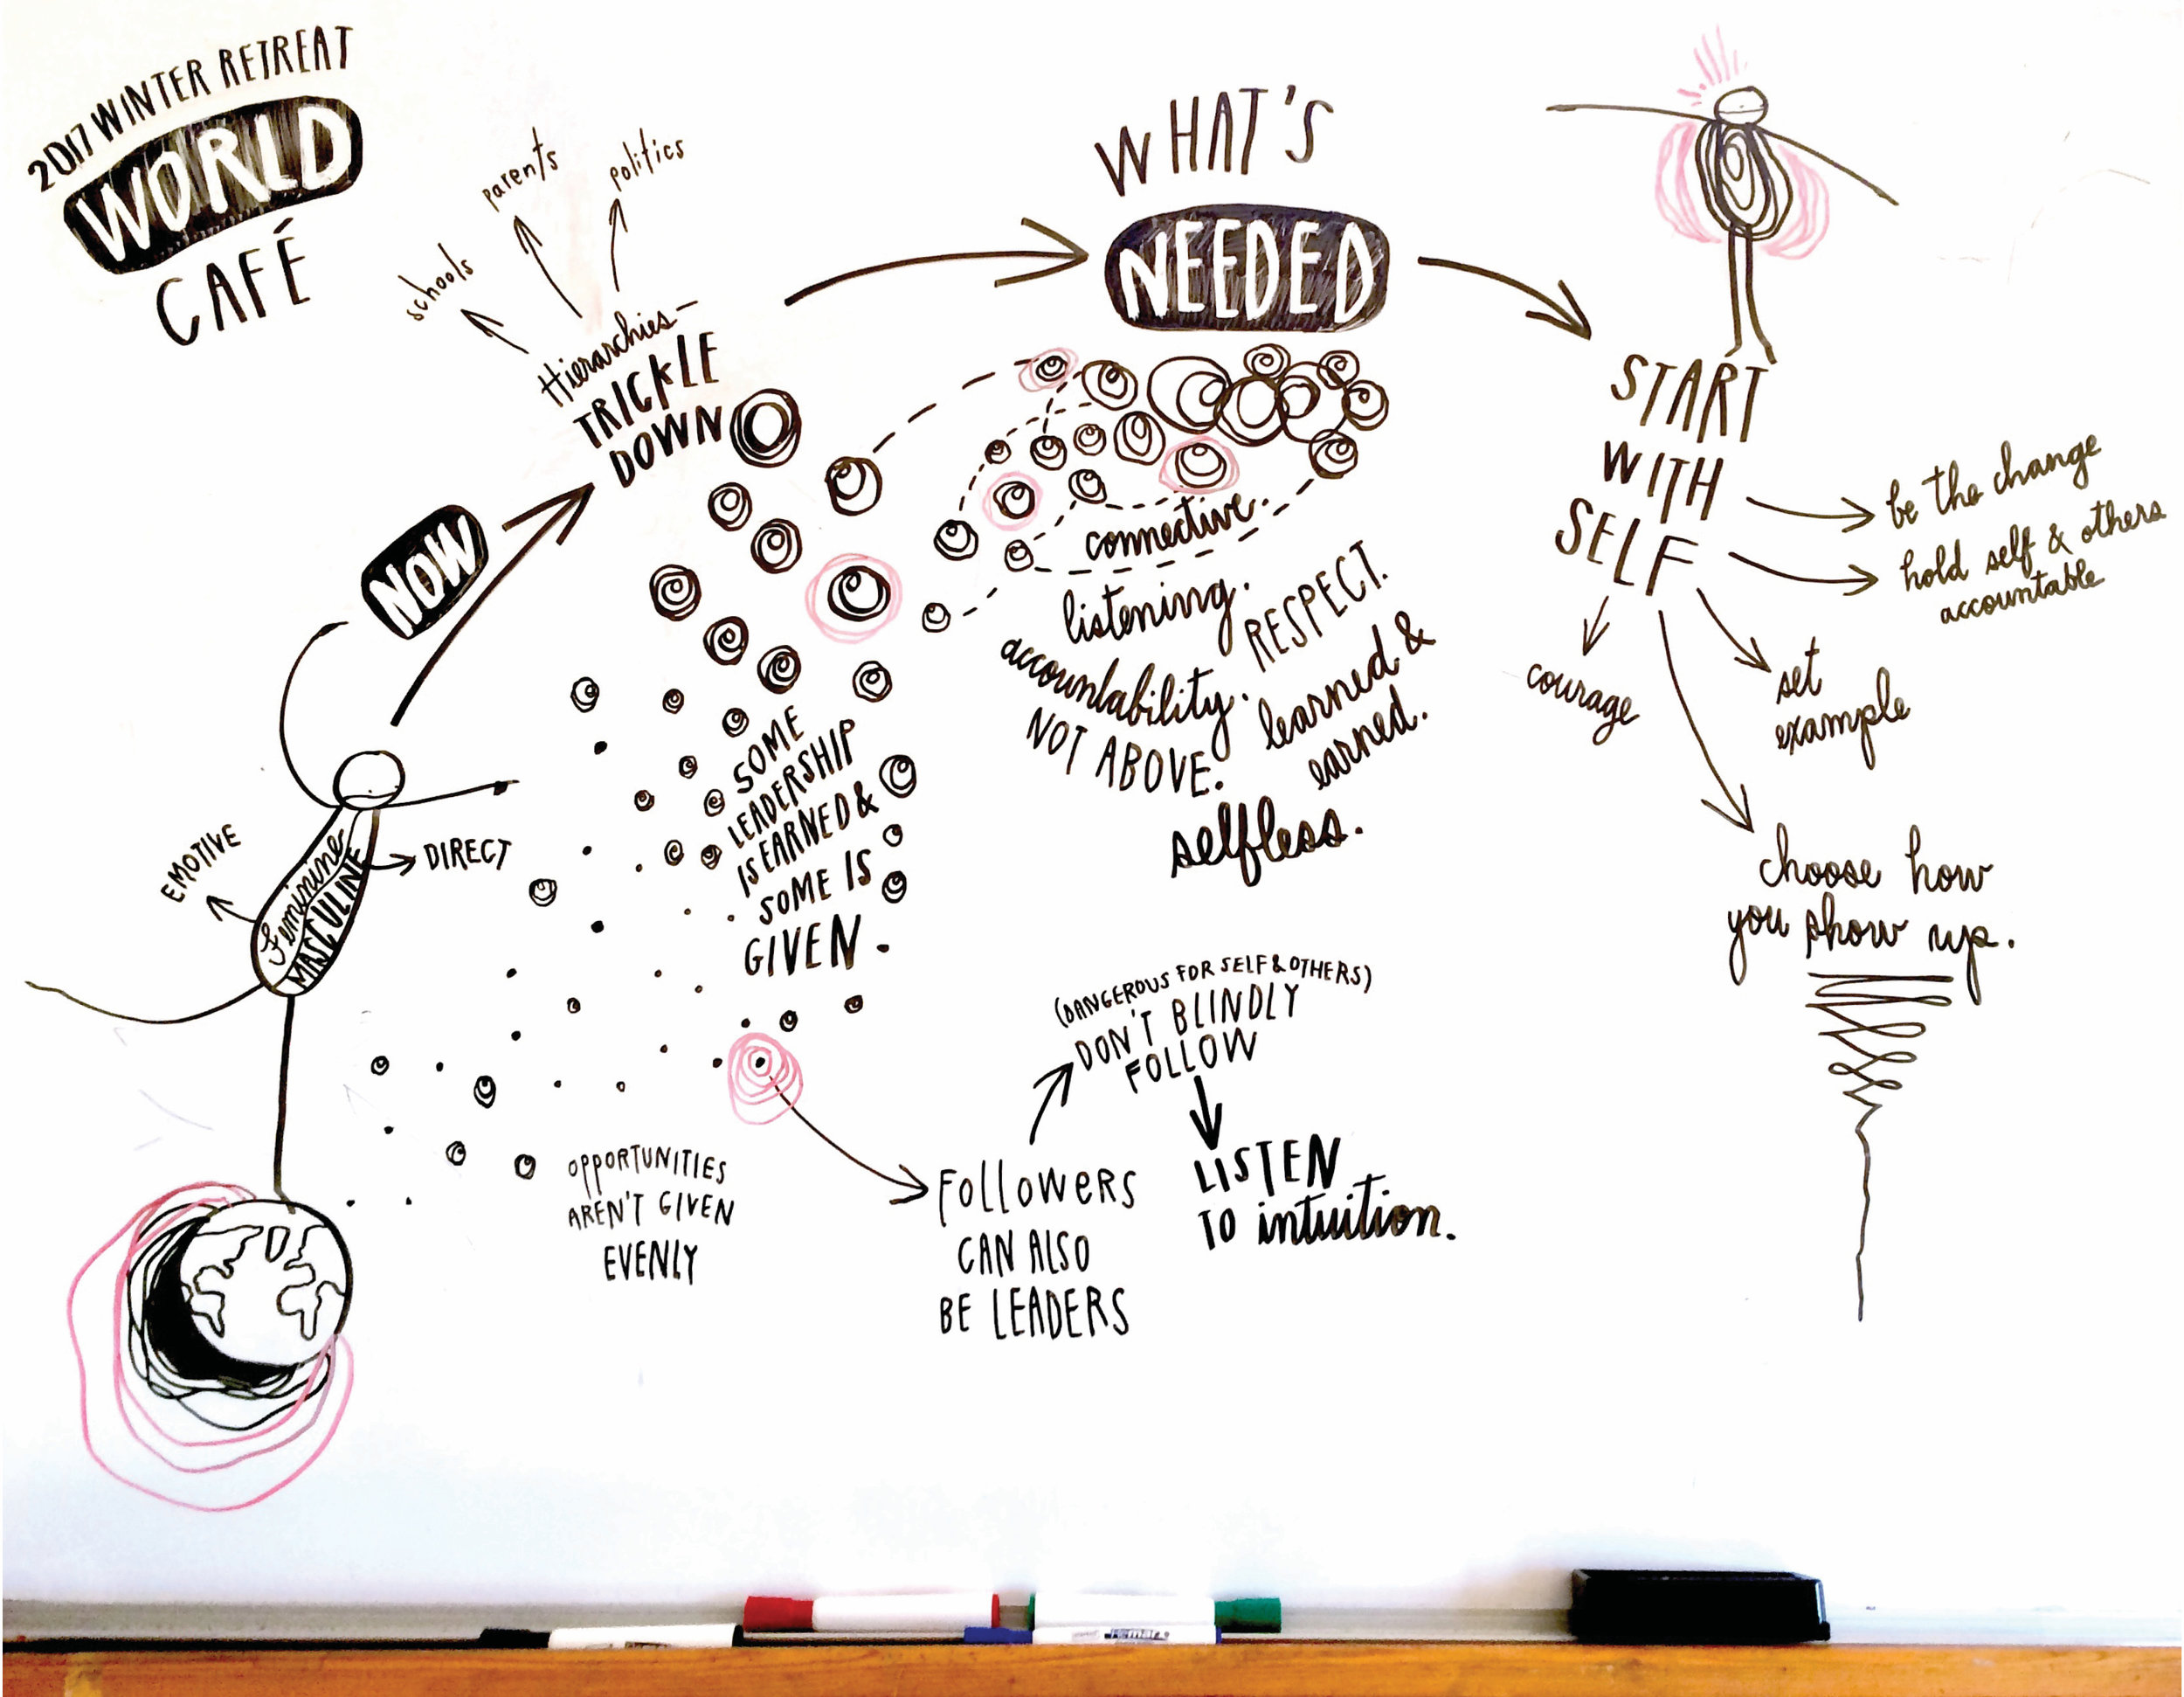 world café recording,january 2017 - One-hour whiteboard recording capturing a World Caféstyle conversation on feminine/masculine leadership with teens of the Eileen Fisher Leadership Institute.